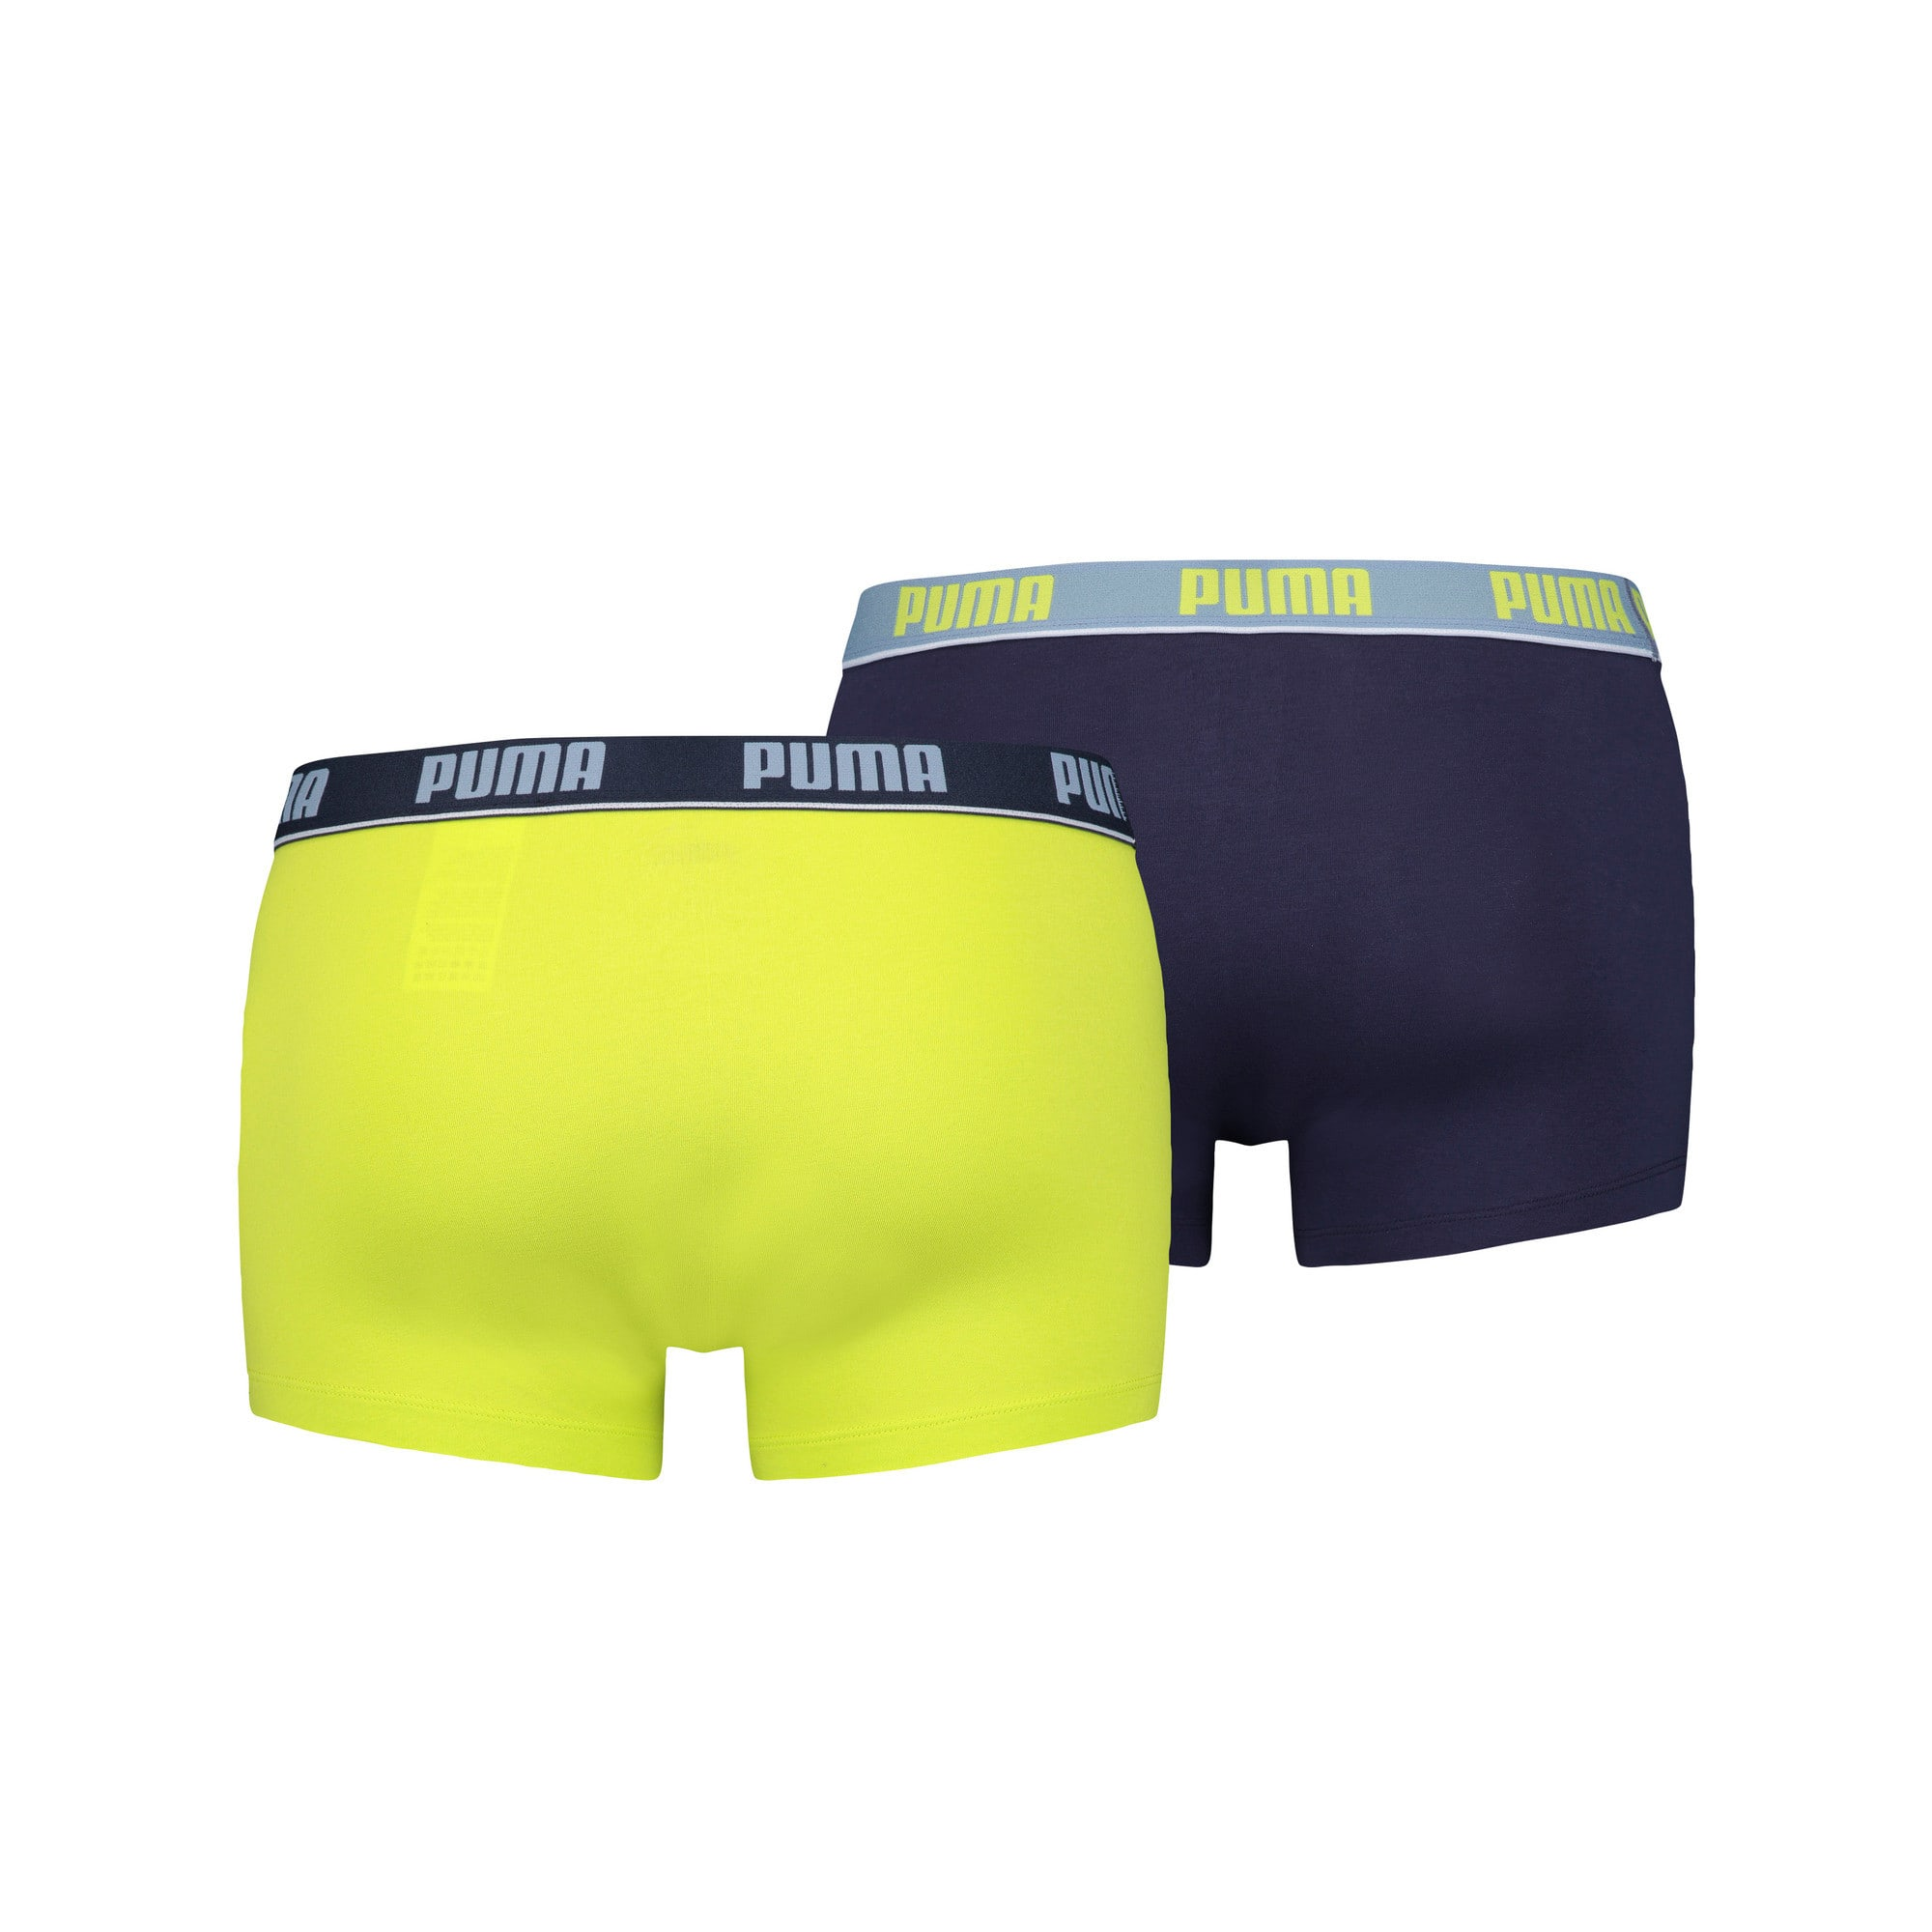 Thumbnail 6 van 2 basic boxershorts, blue / lime, medium